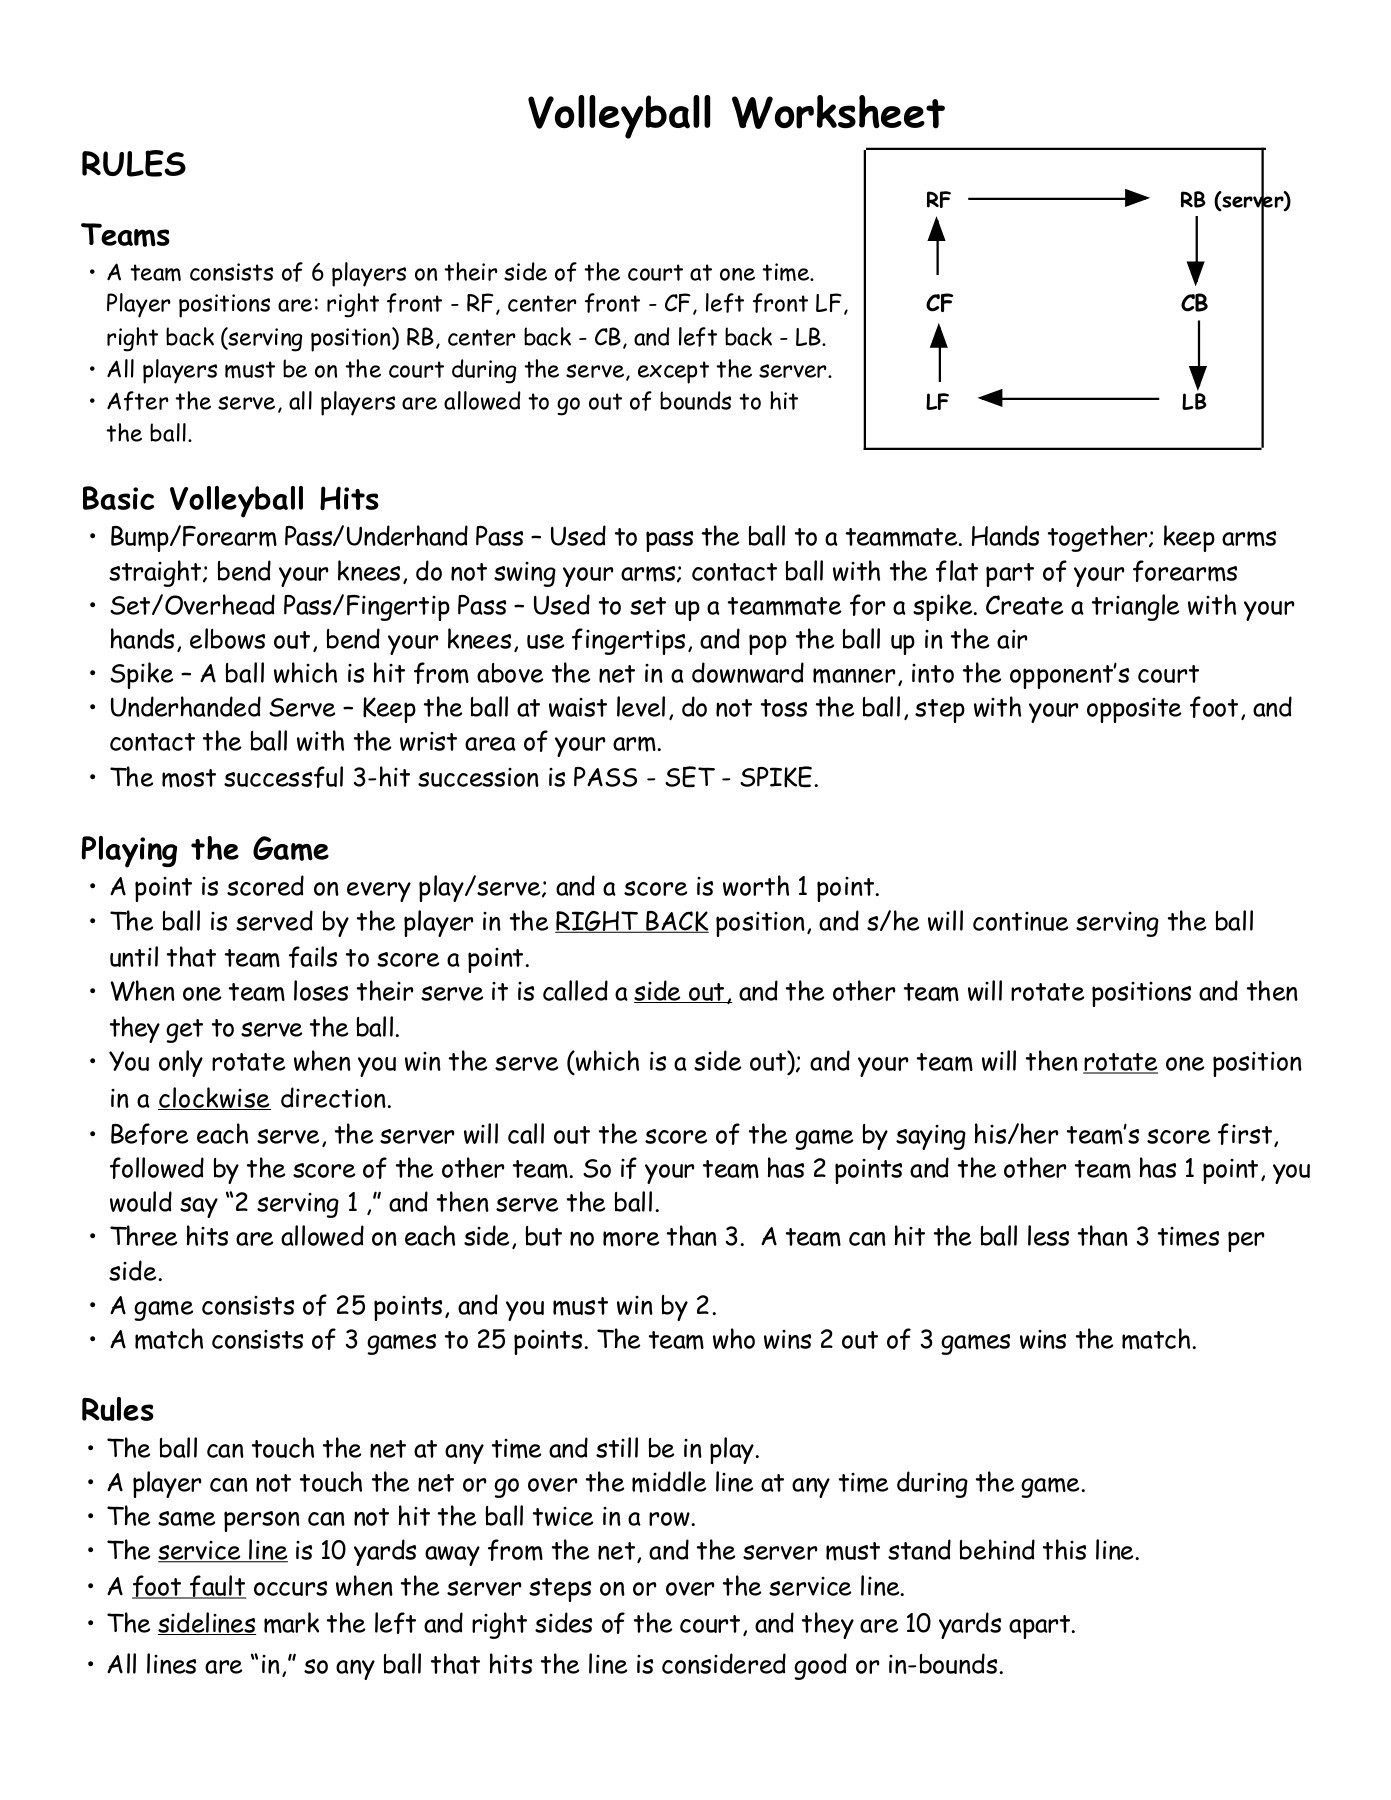 Worksheets Volleyball Worksheets Cheatslist Free